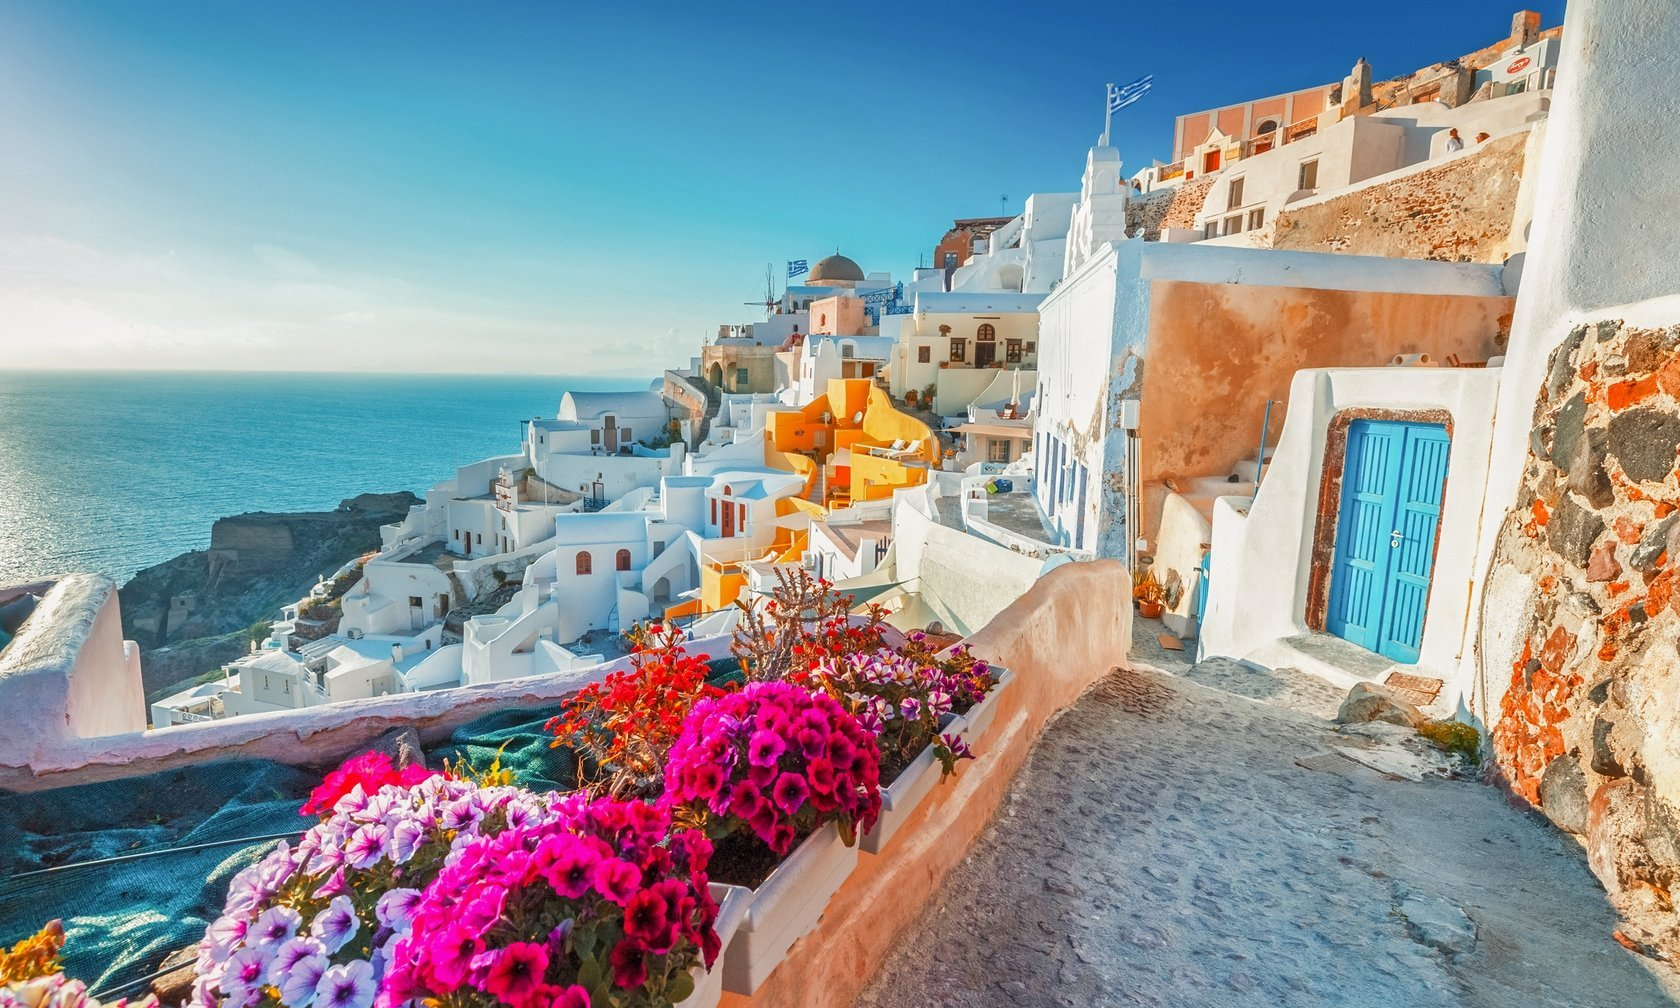 37 Fascinating Facts About Greece You Might Not Know